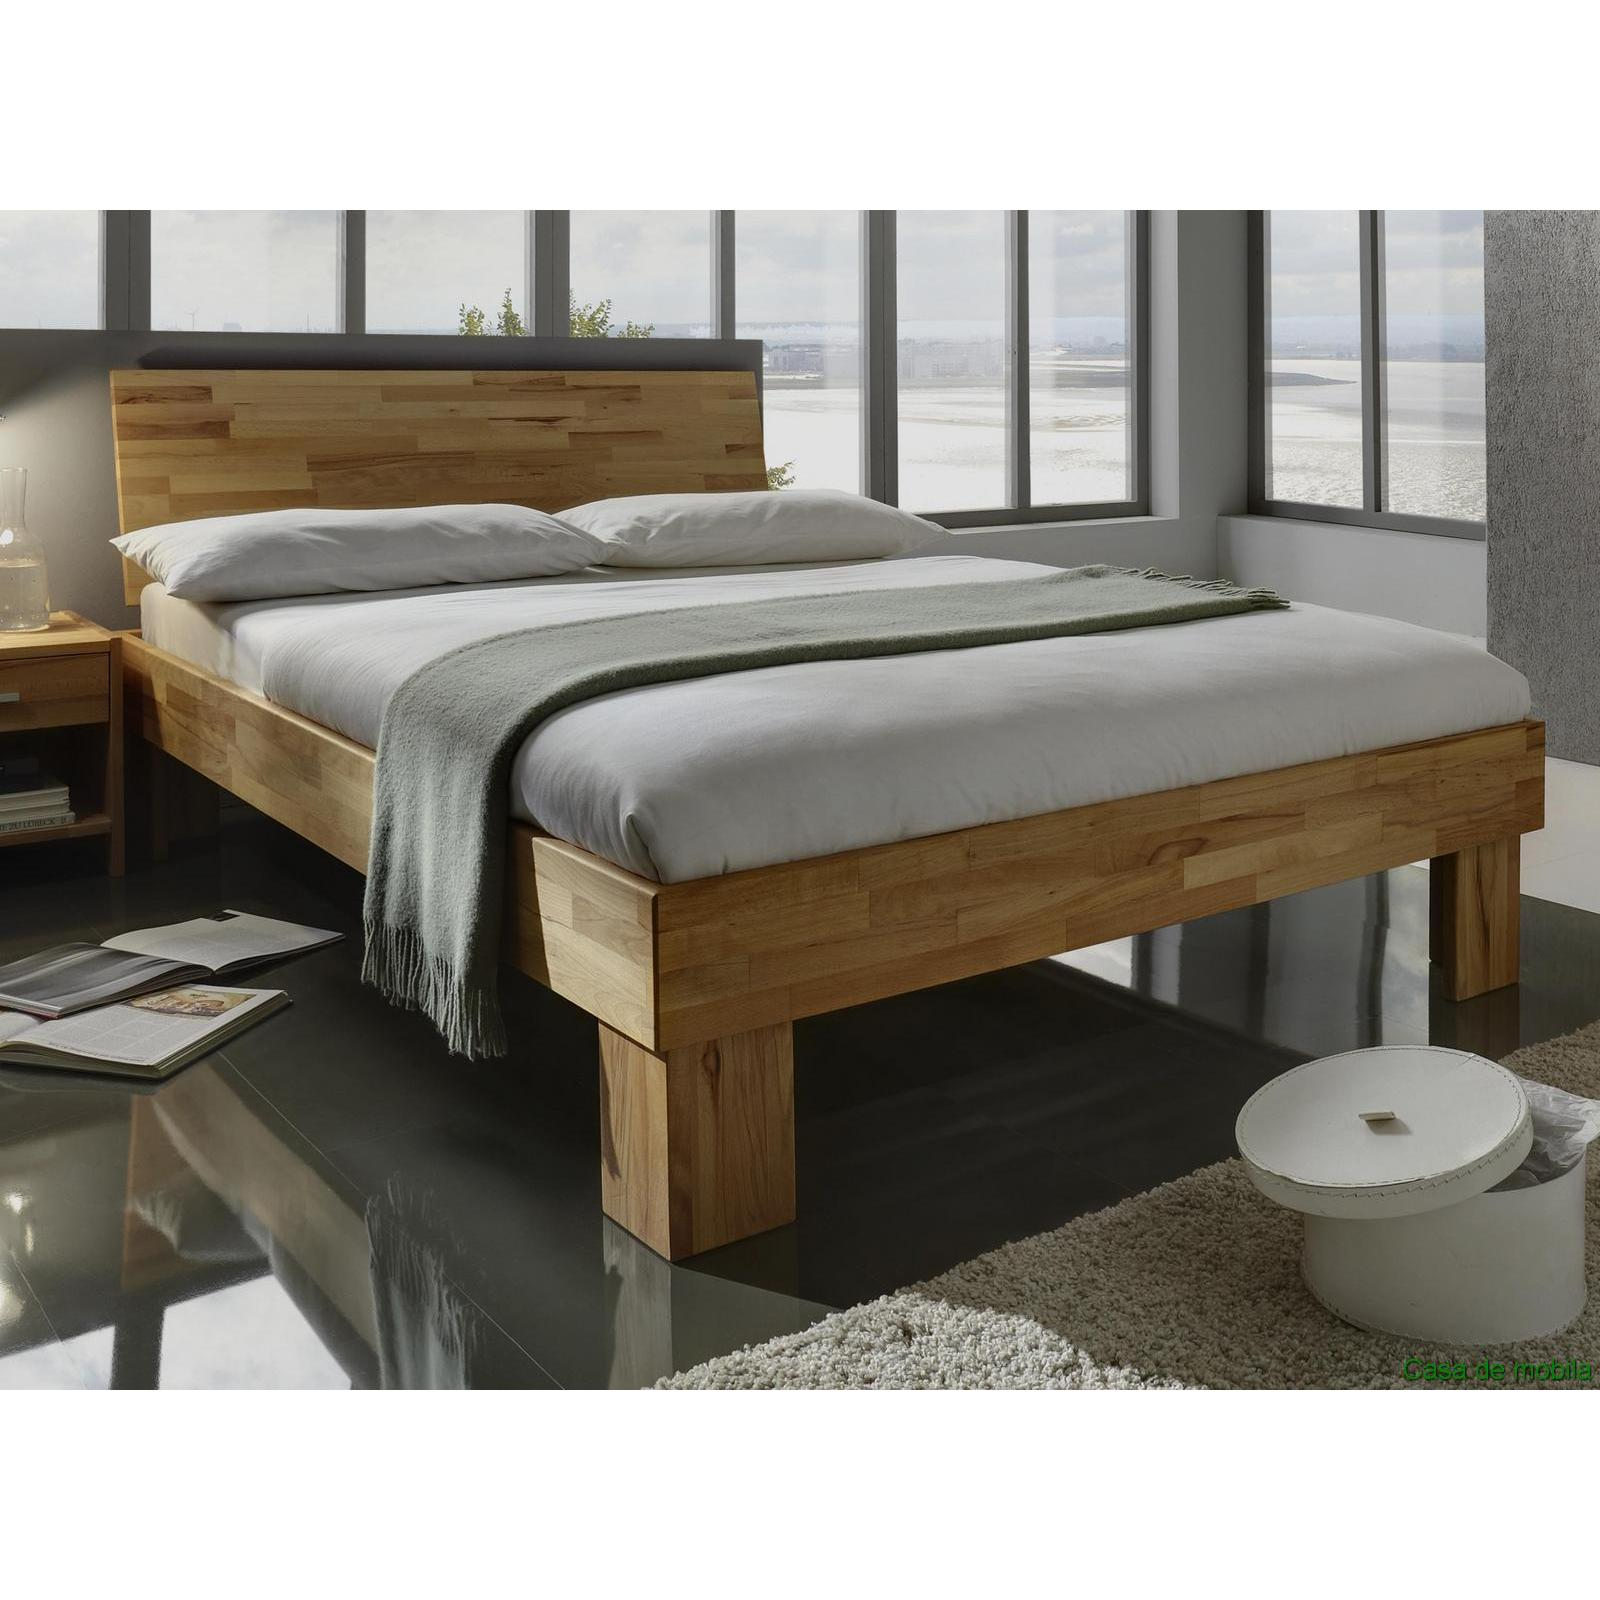 echtholz doppelbett kernbuche massiv ge lt gamma bett 160x200. Black Bedroom Furniture Sets. Home Design Ideas